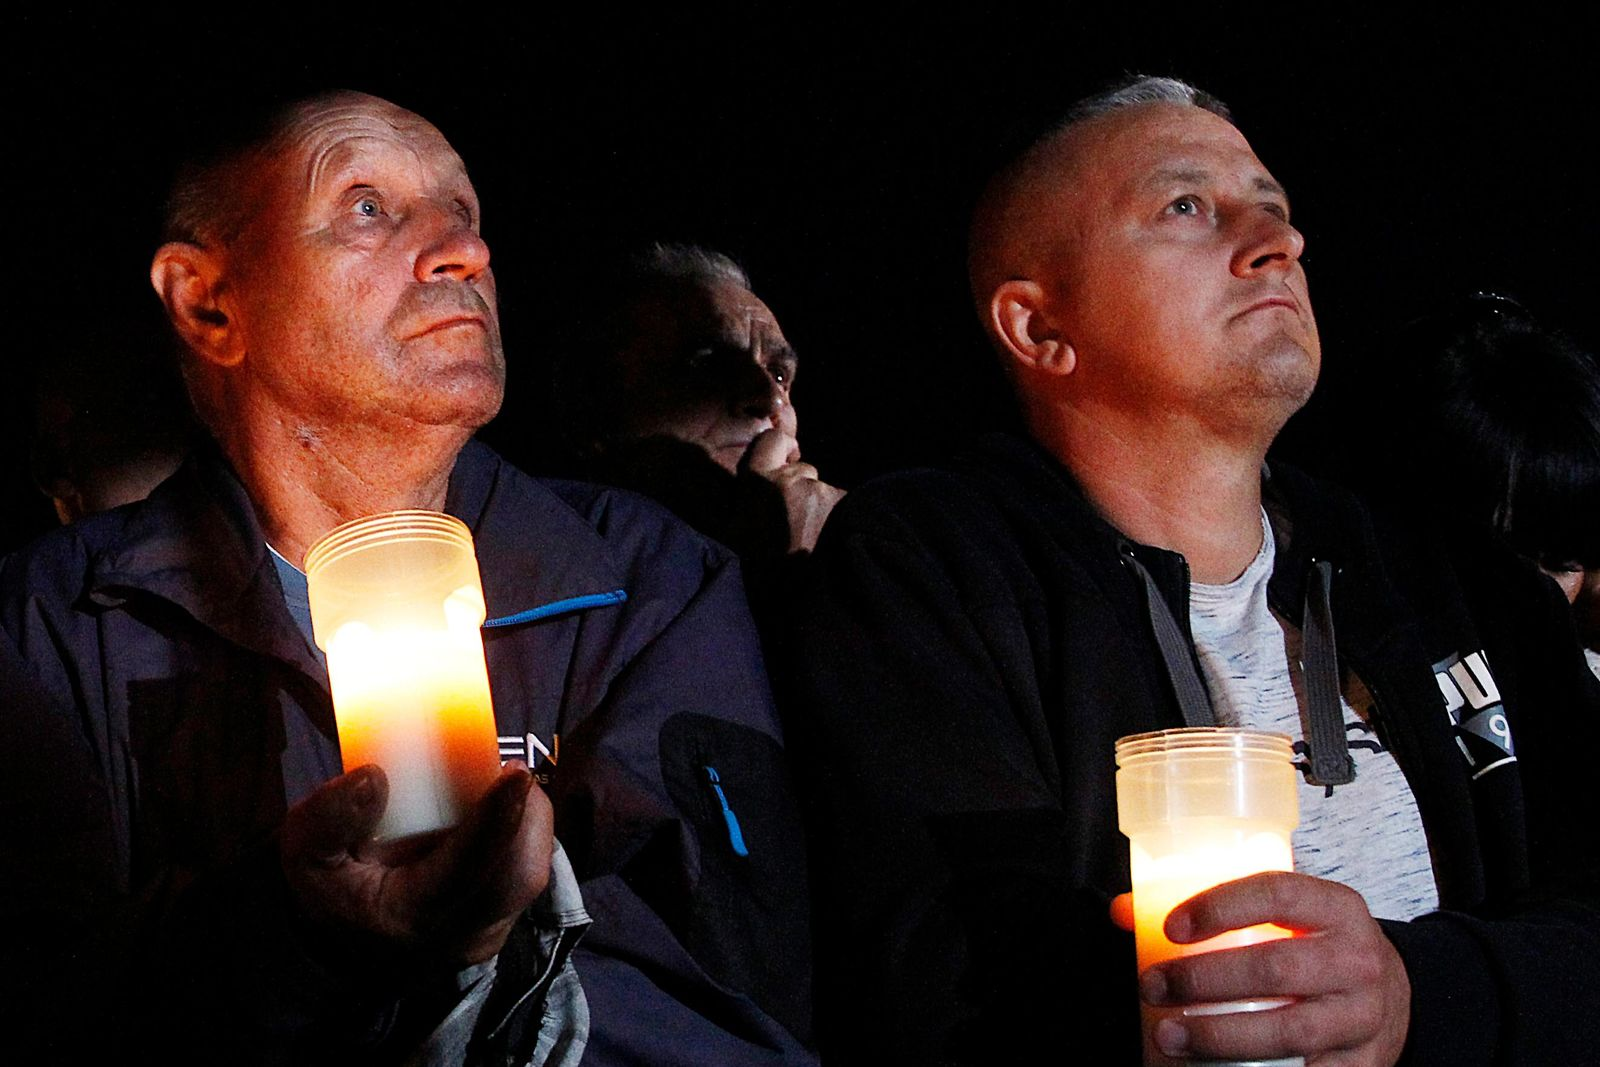 Spectators hold candles at the memorial service during a ceremony marking the 80th anniversary of the start of World War II, in Wielun, Poland, Sunday, Sept. 1, 2019. The ceremony in Wielun, attended by German President Frank-Walter Steinmeier and his Polish counterpart Andrzej Duda, started at 4.40 a.m., the exact hour that, according to survivors, the war's first bombs fell, killing civilians. (AP Photo/Czarek Sokolowski)